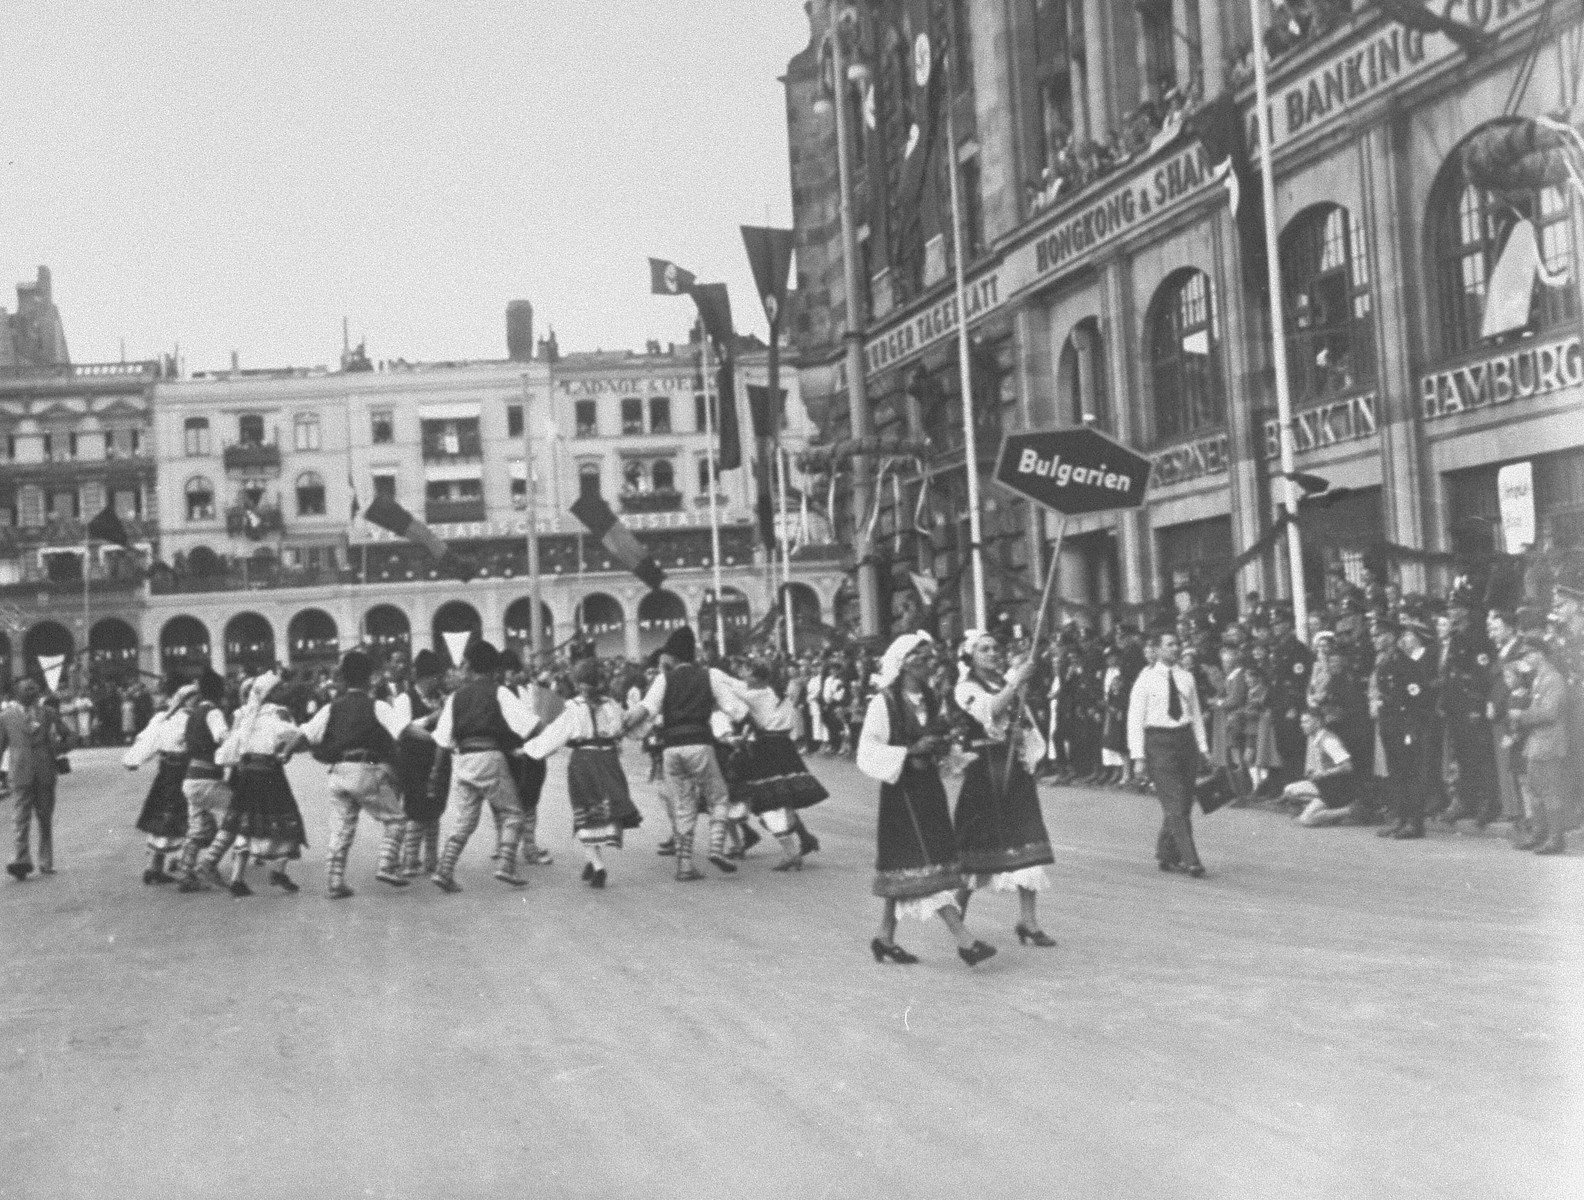 A troupe of dancers from Bulgaria entertain German spectators upon the arrival of the Bulgarian Olympic team in Germany.